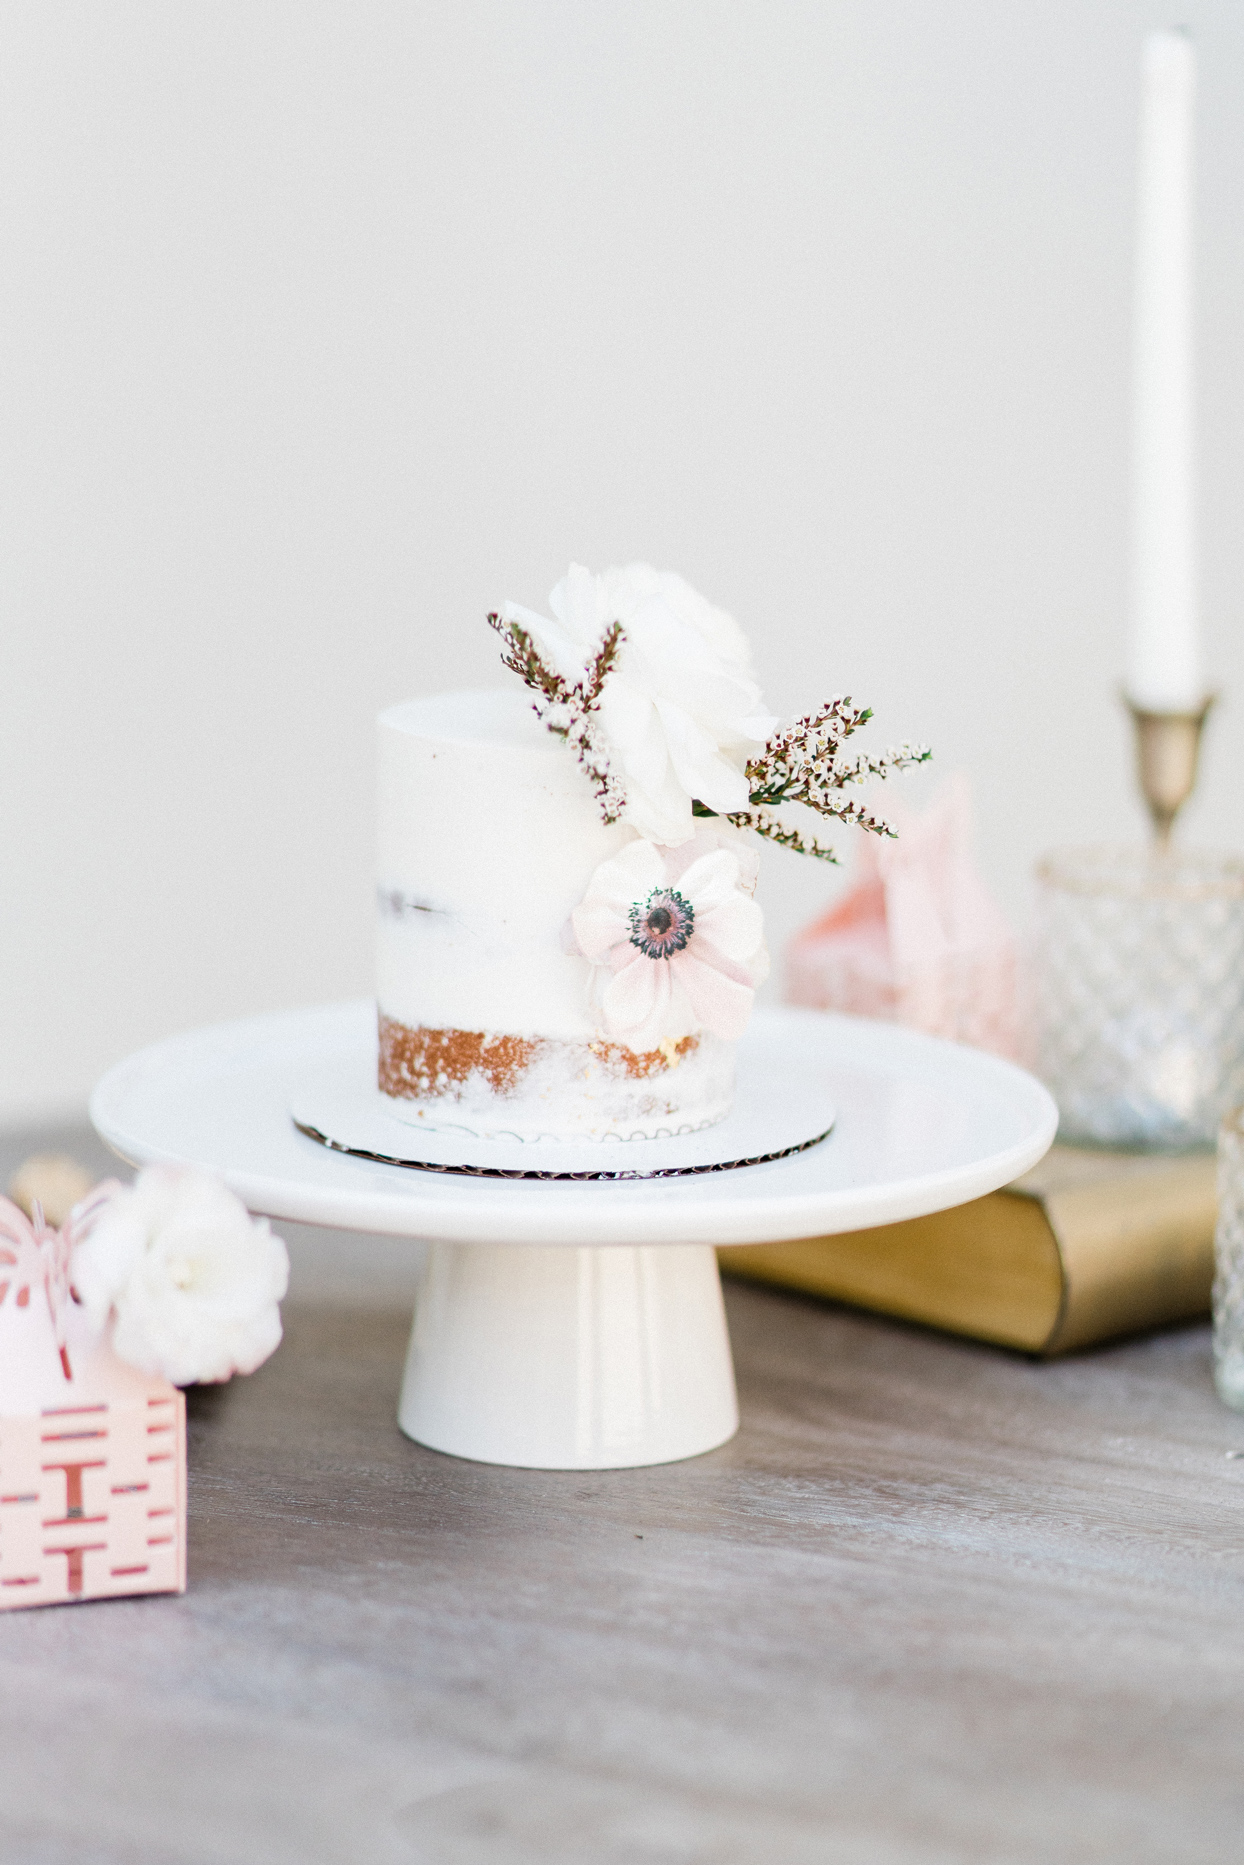 Two-tier white frosted cake